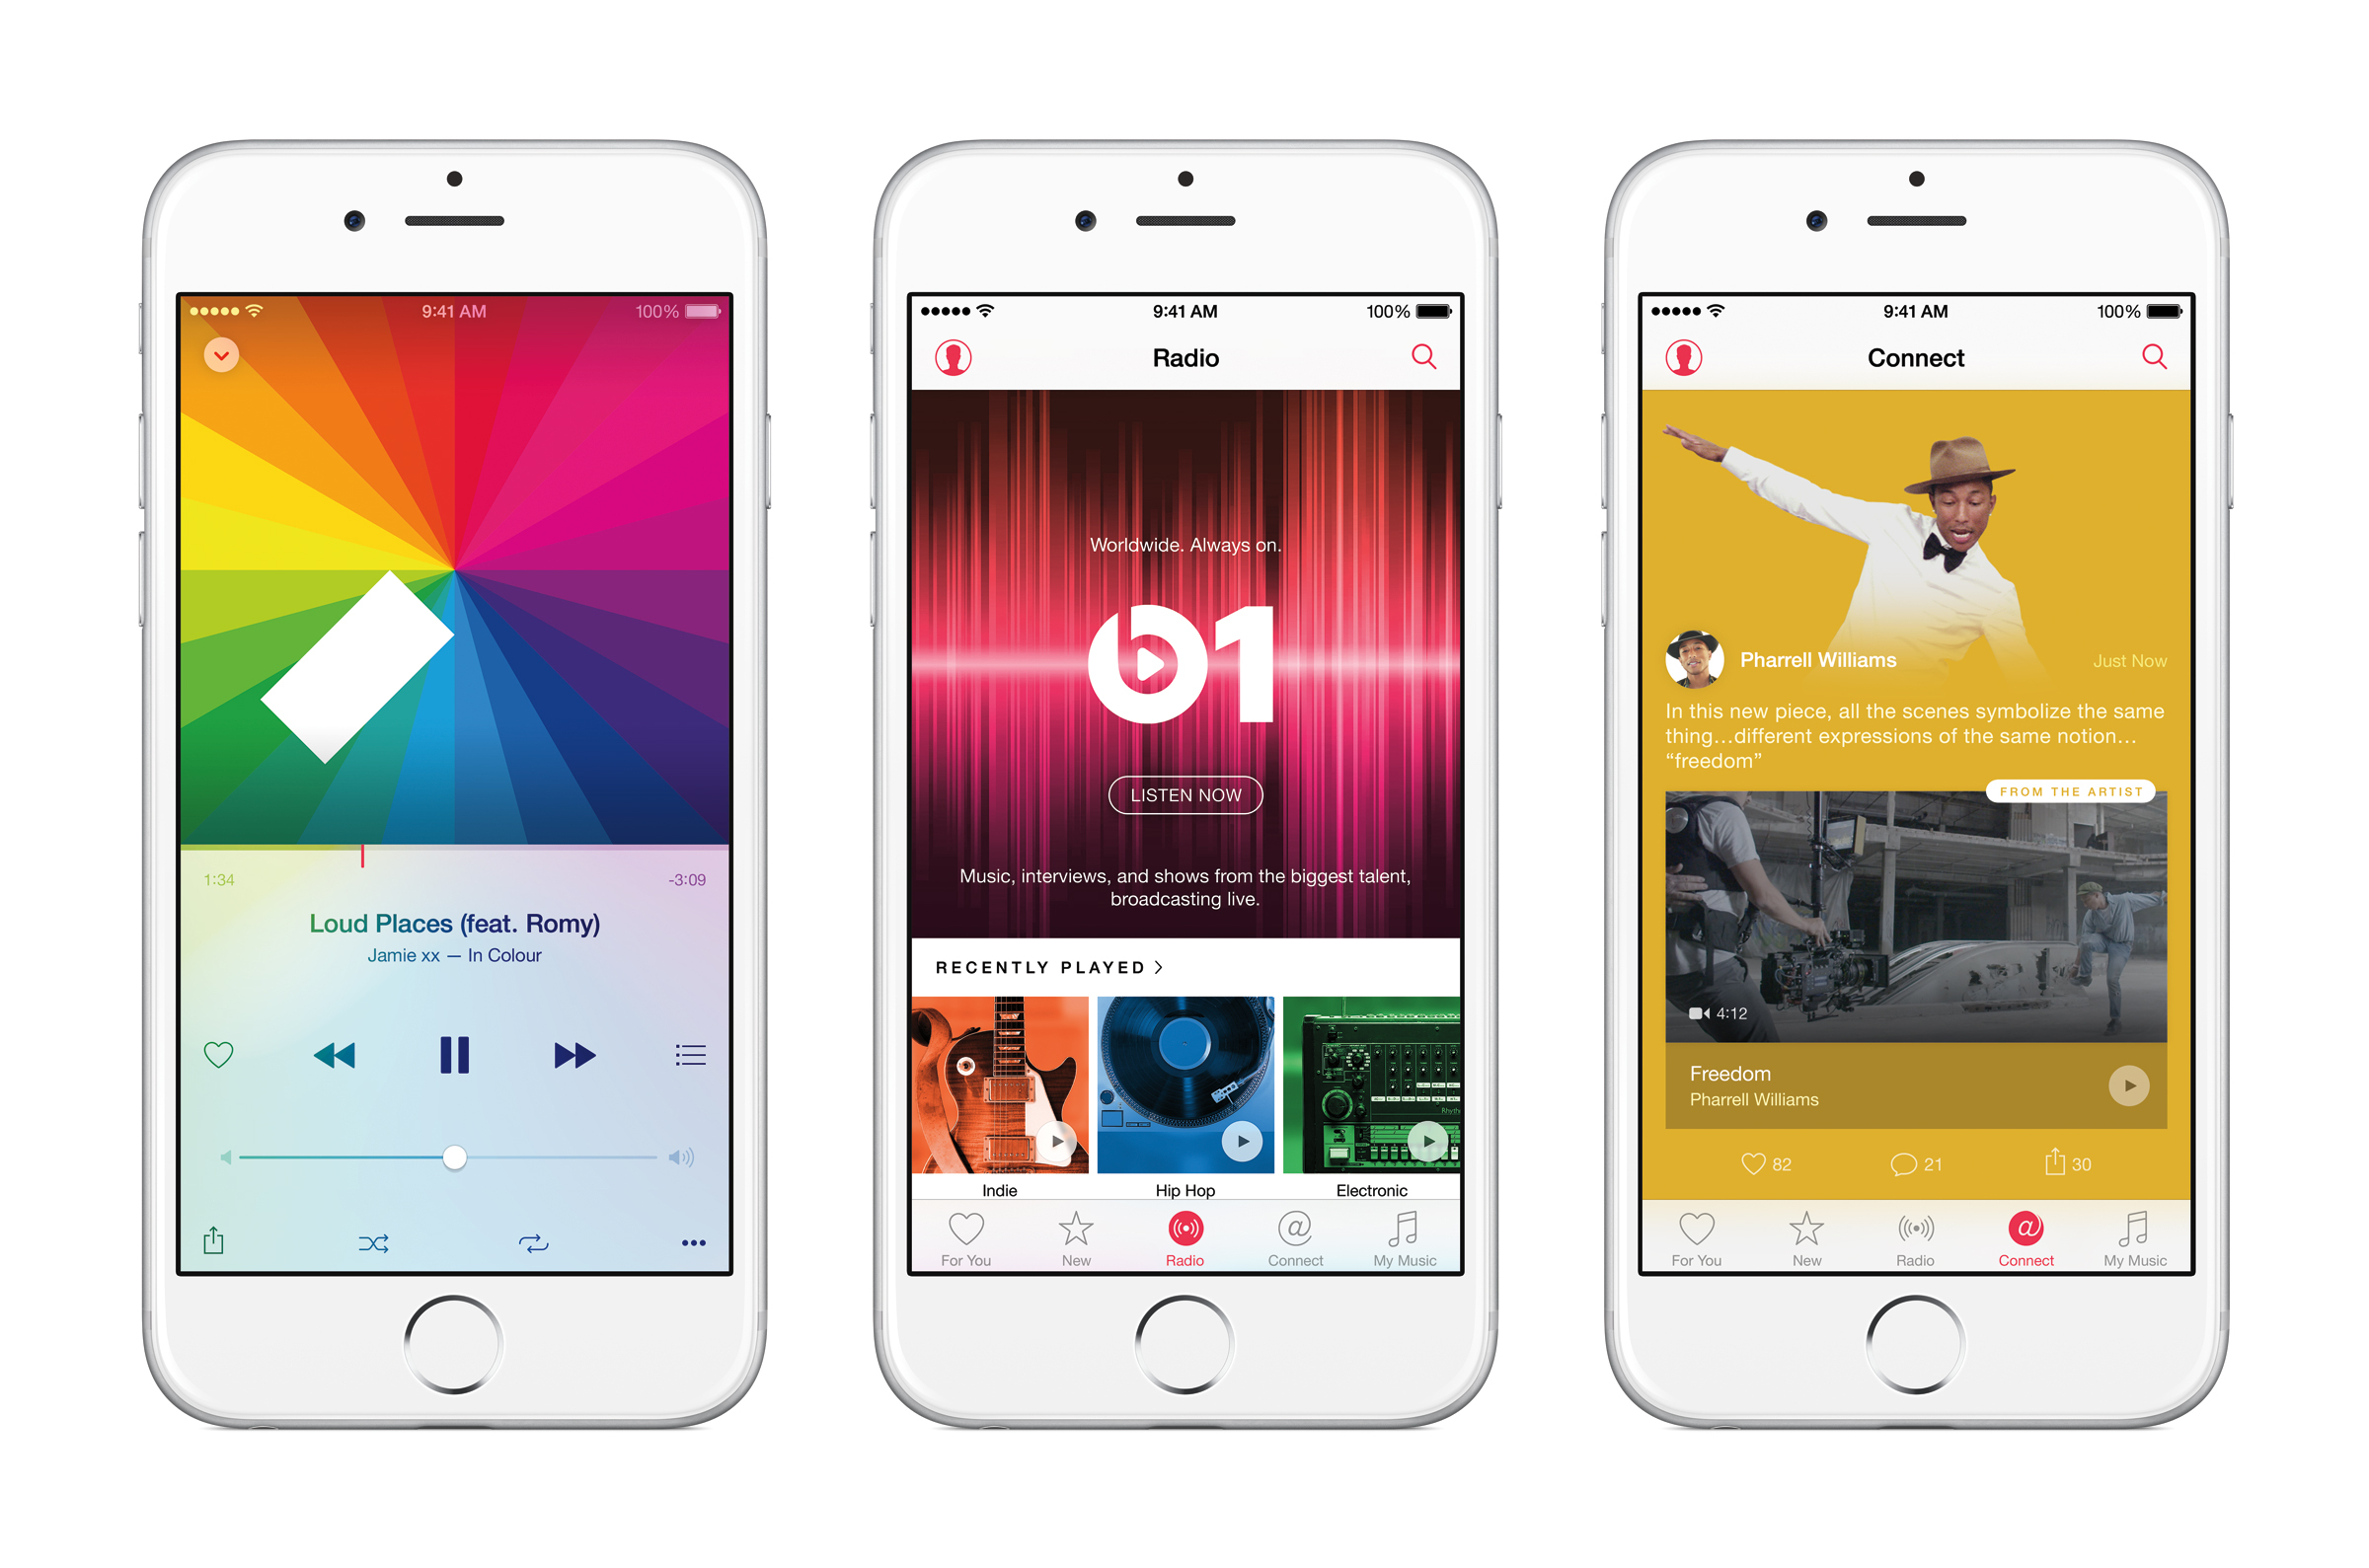 Apple Music Combines Streaming, Radio, Social Media For $10/Month